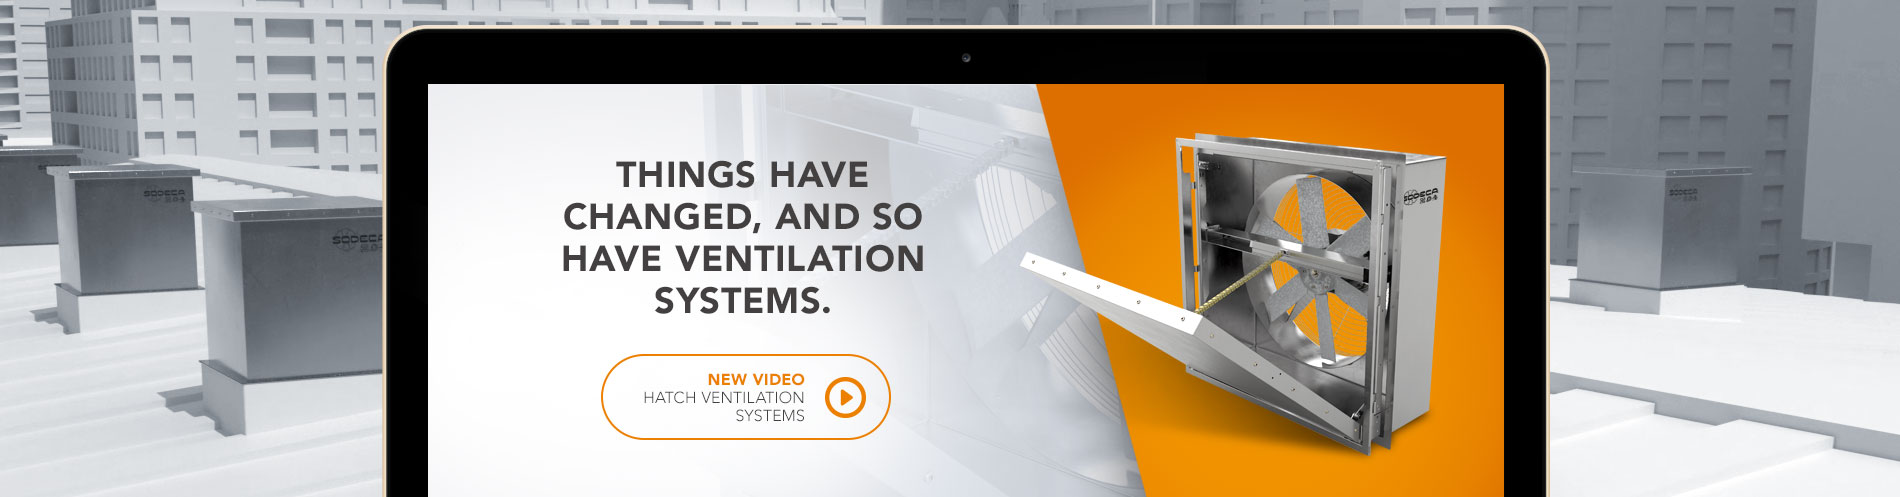 New video hatch ventilation systems